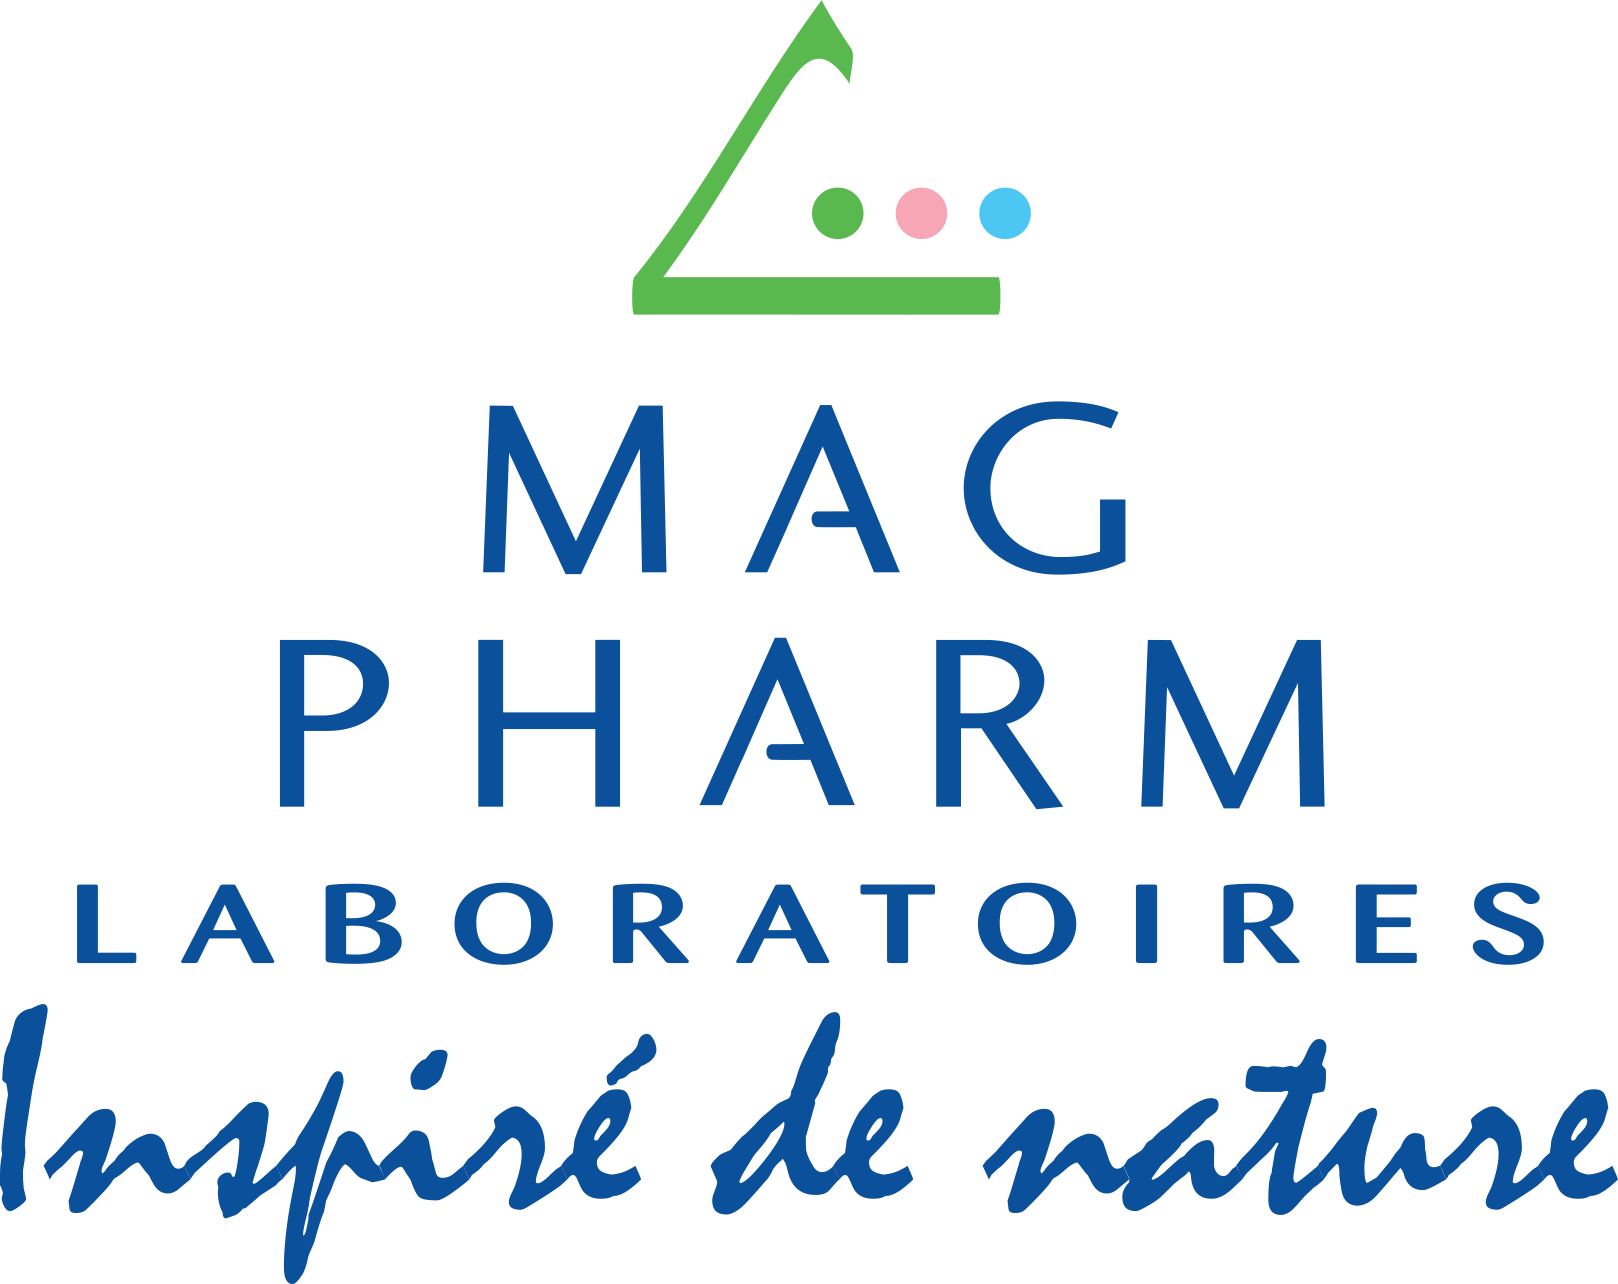 Magpharm